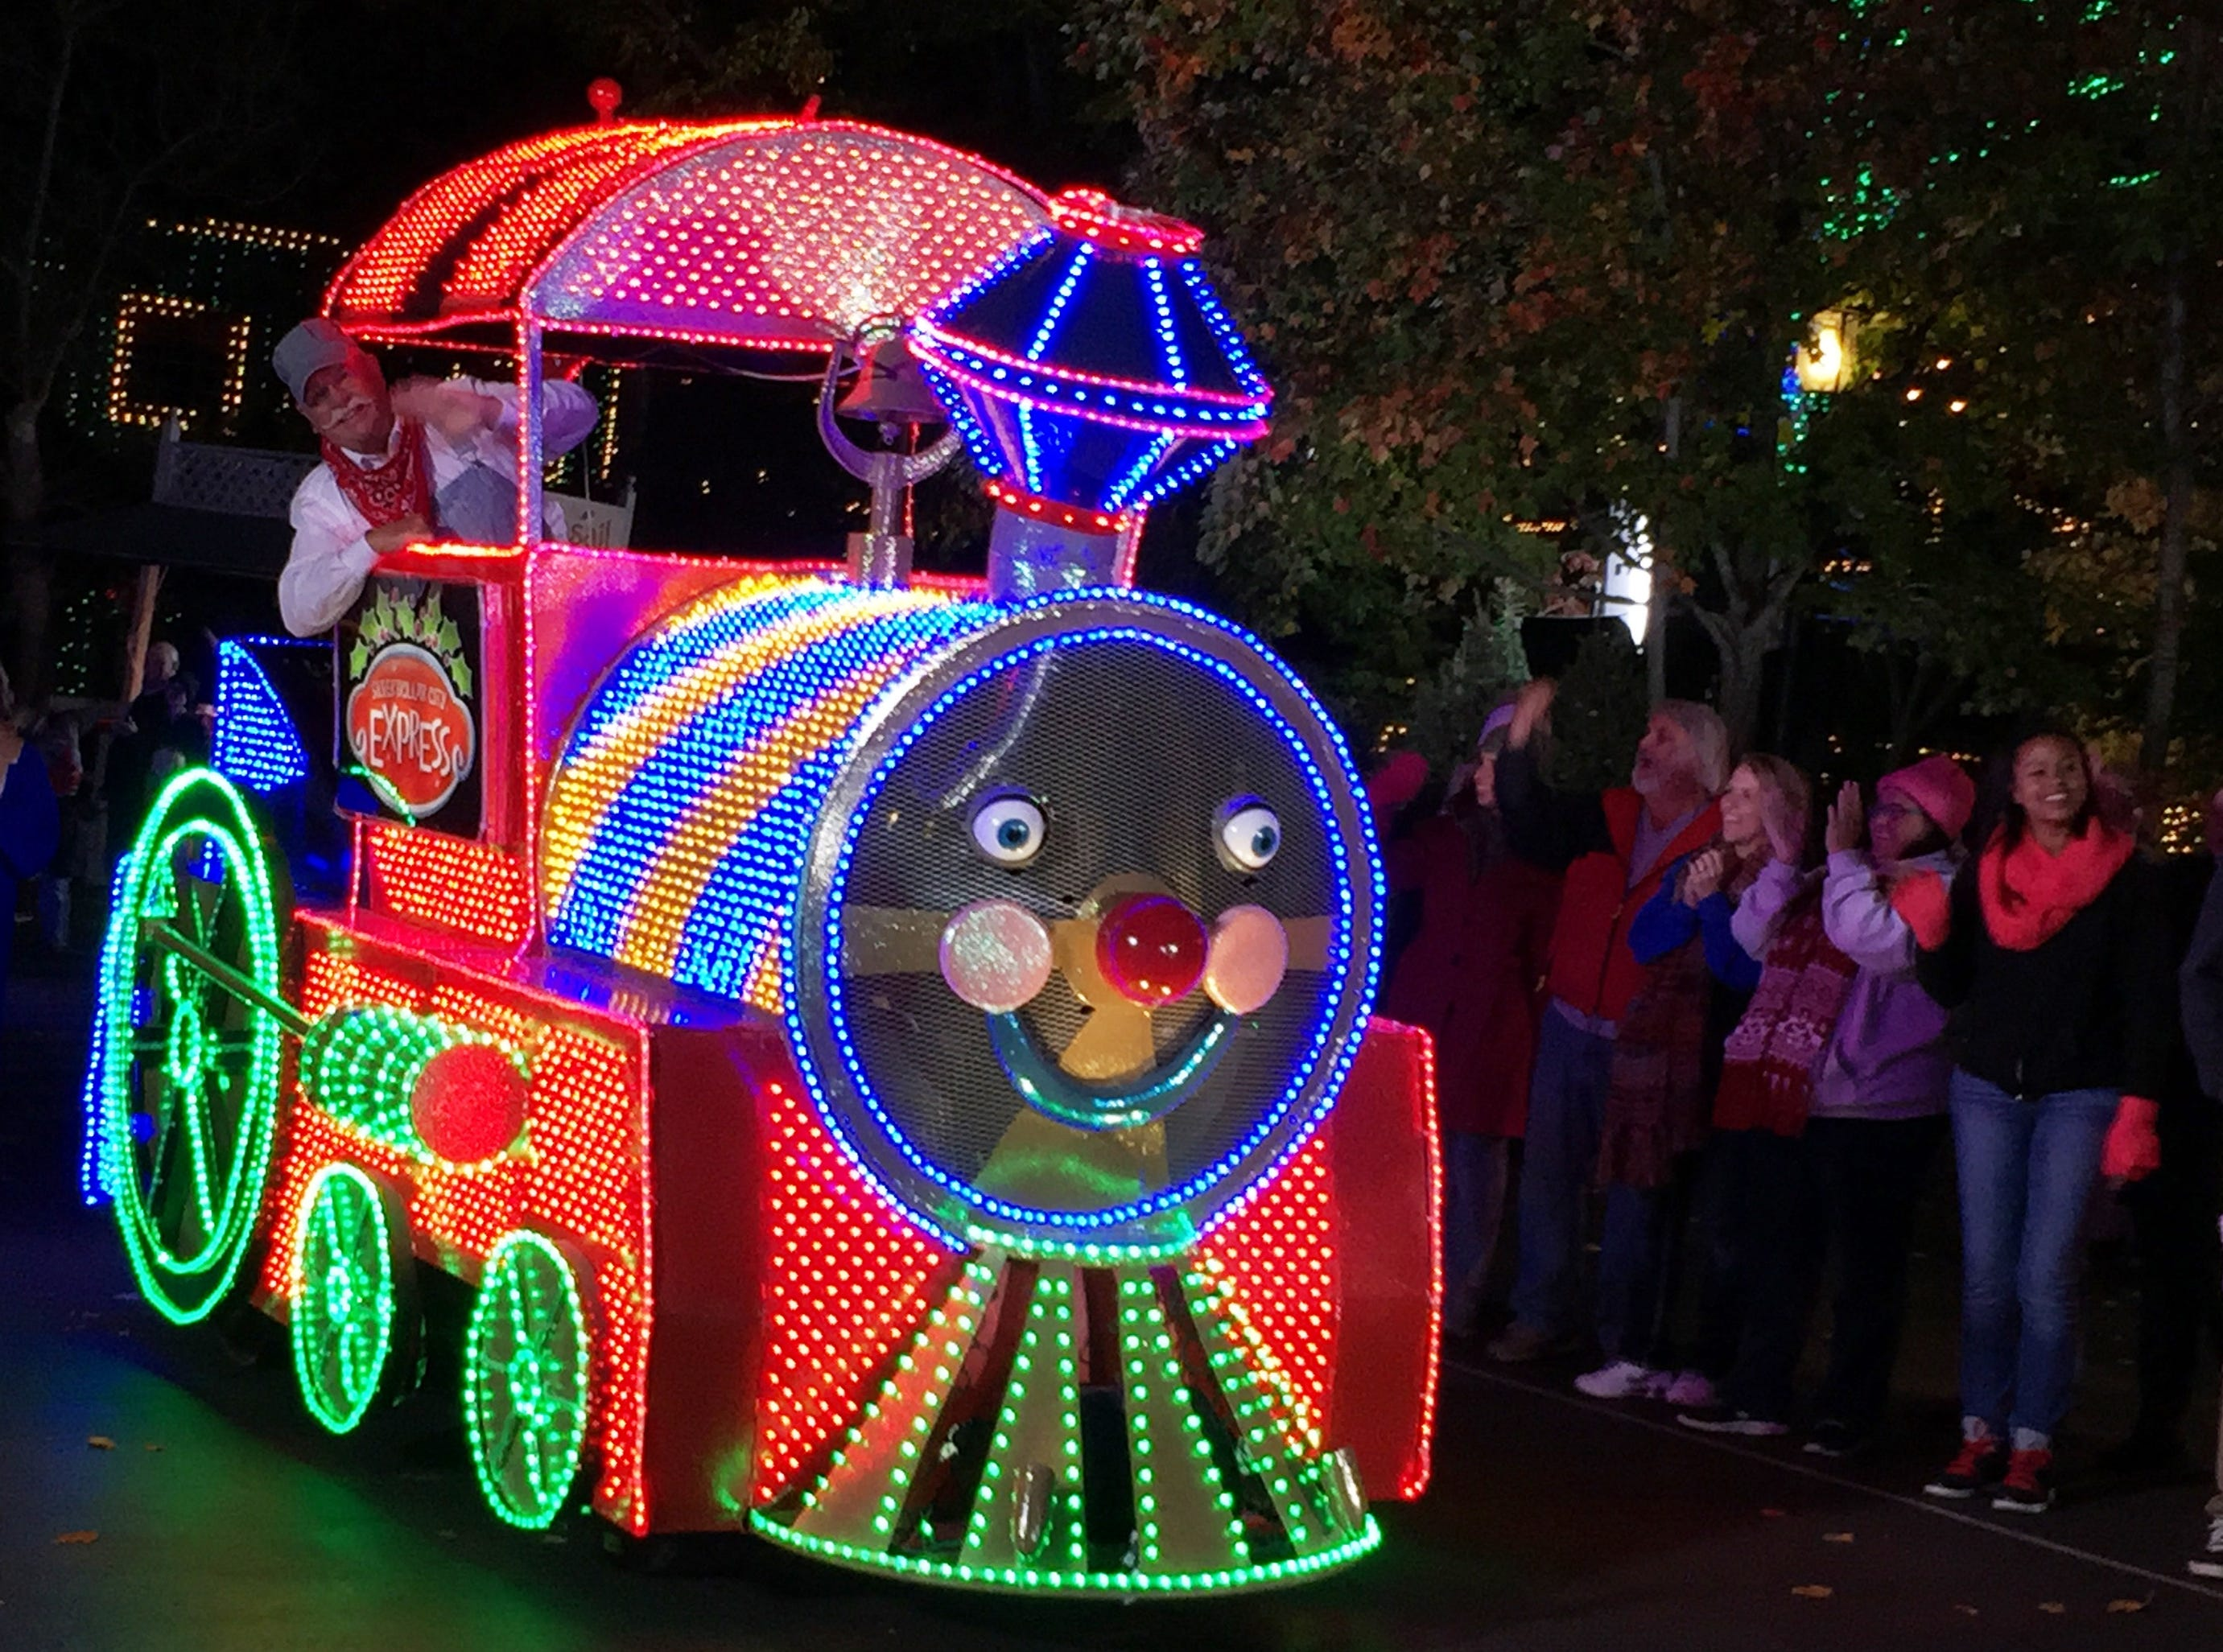 A train engine is part of the Christmas light parade at Silver Dollar City.